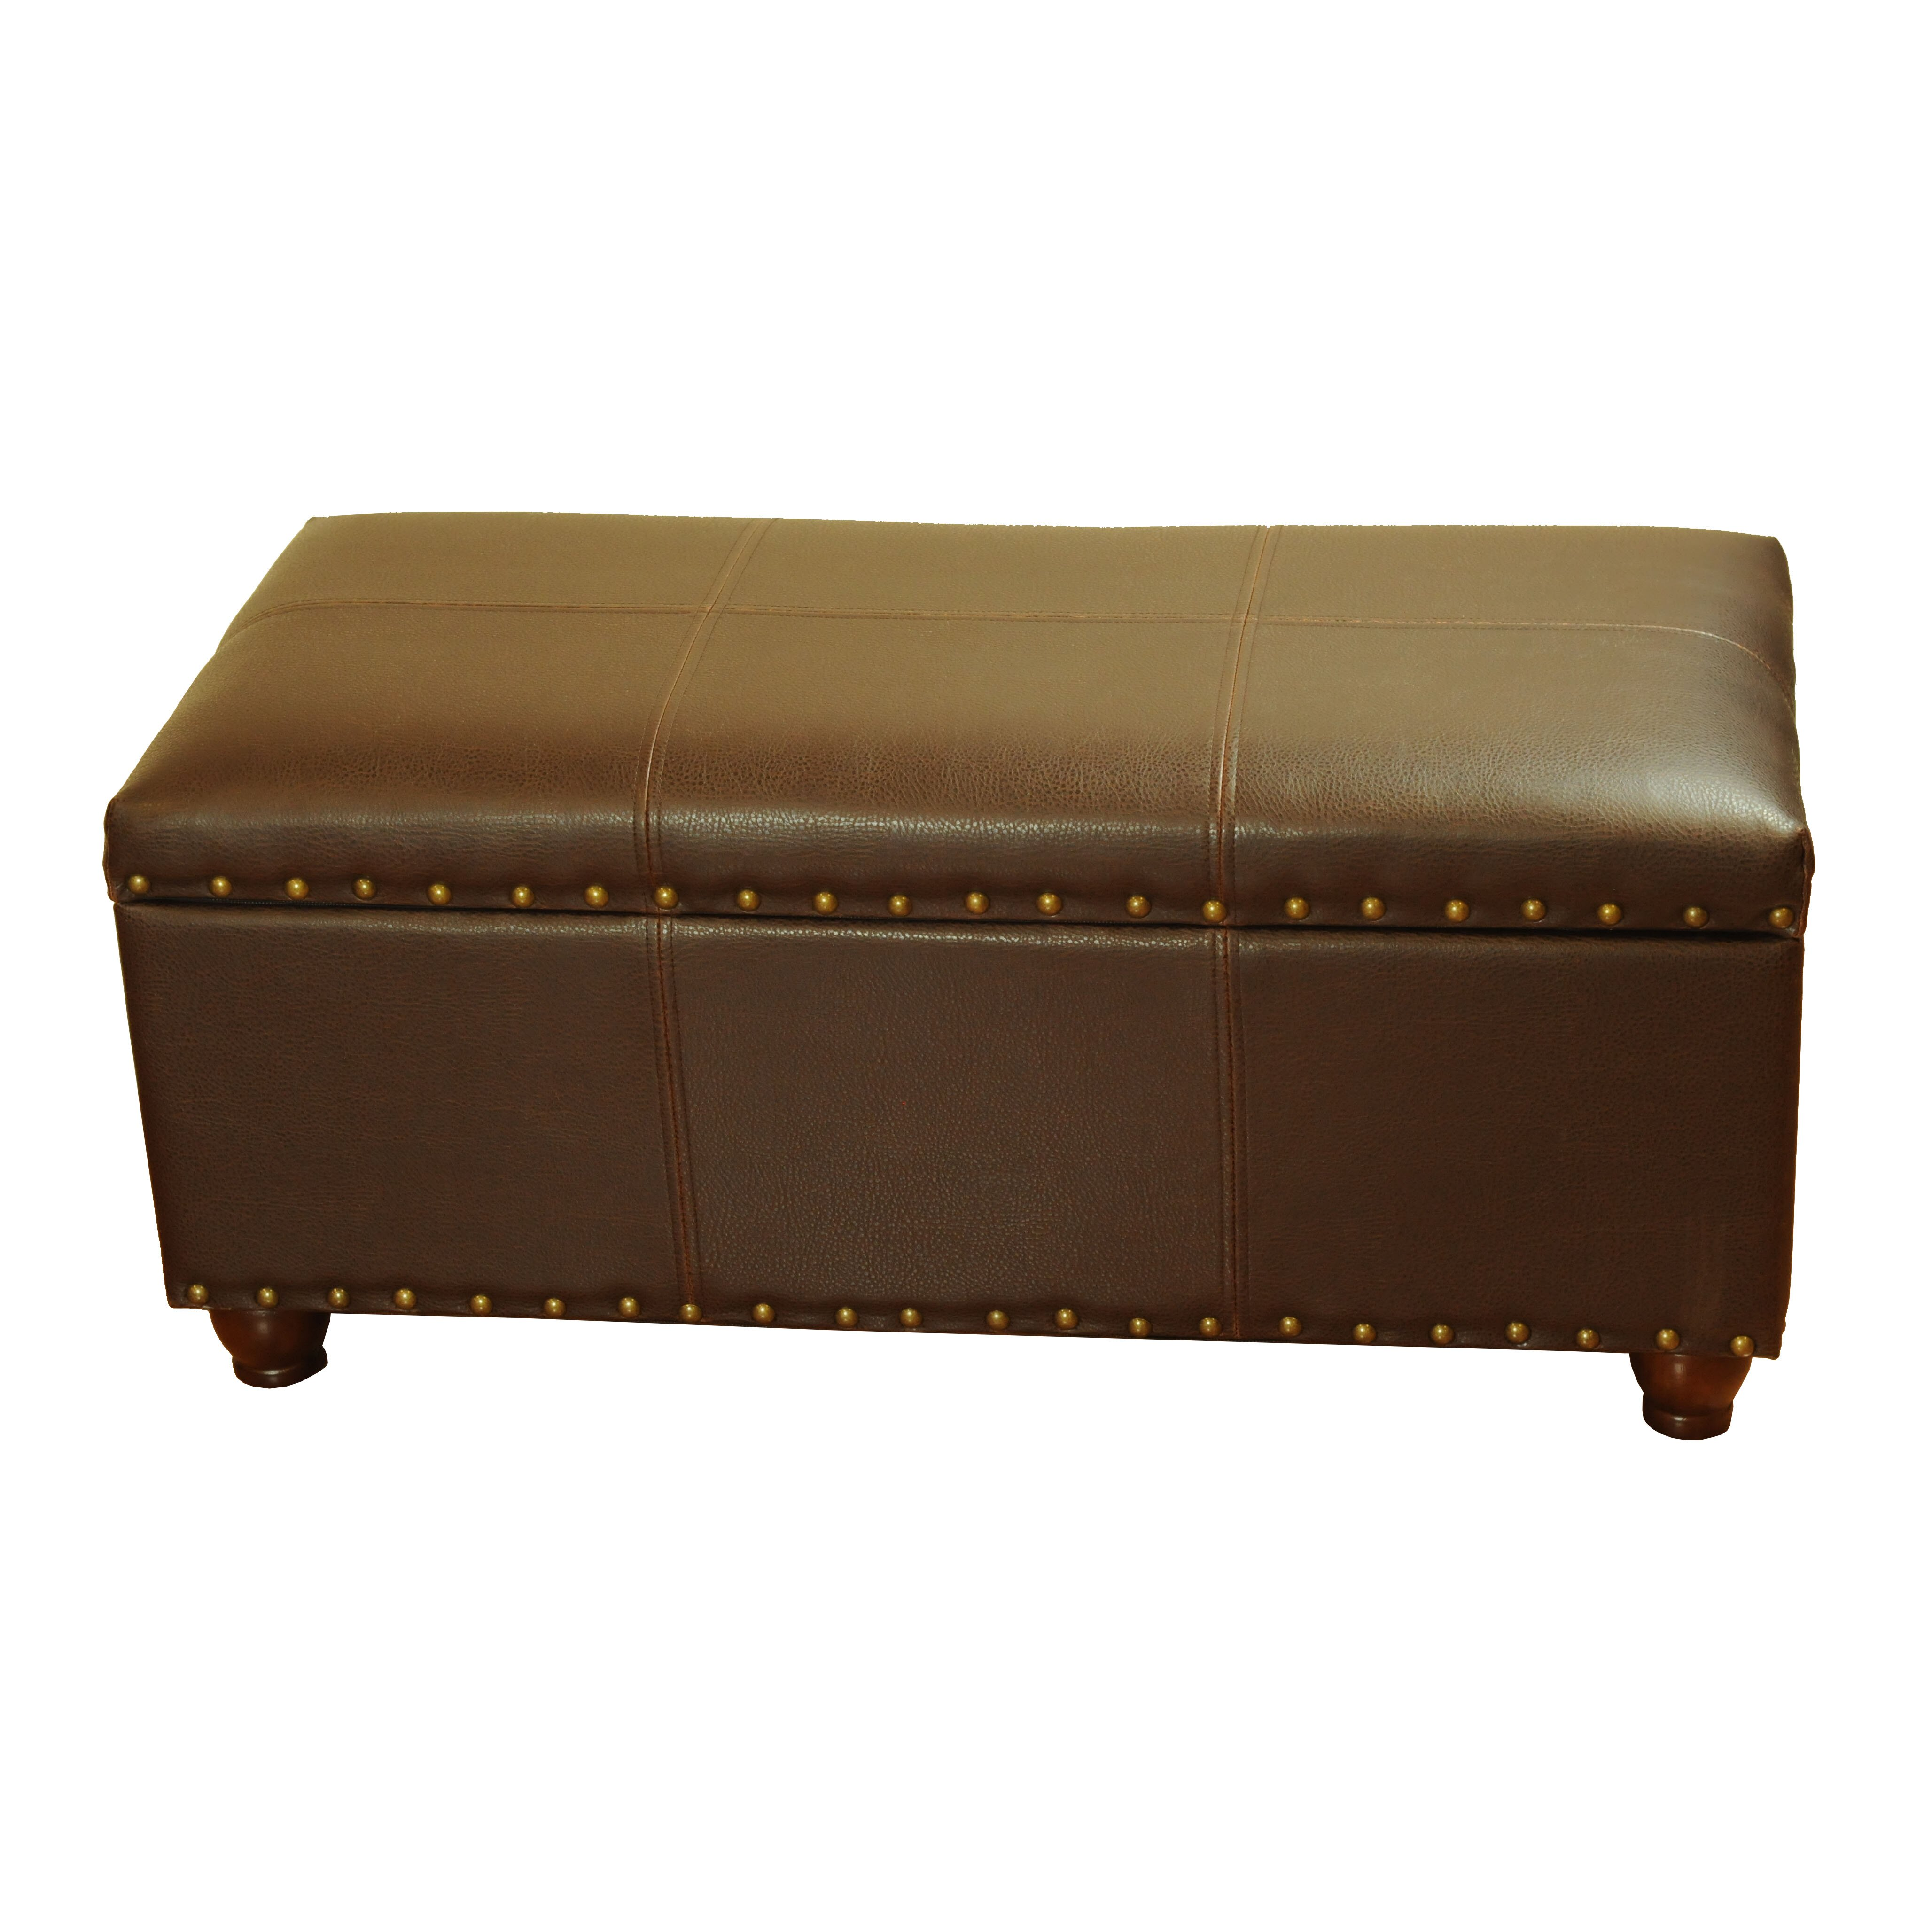 Homepop faux leather storage bedroom bench reviews wayfair Bedroom storage bench